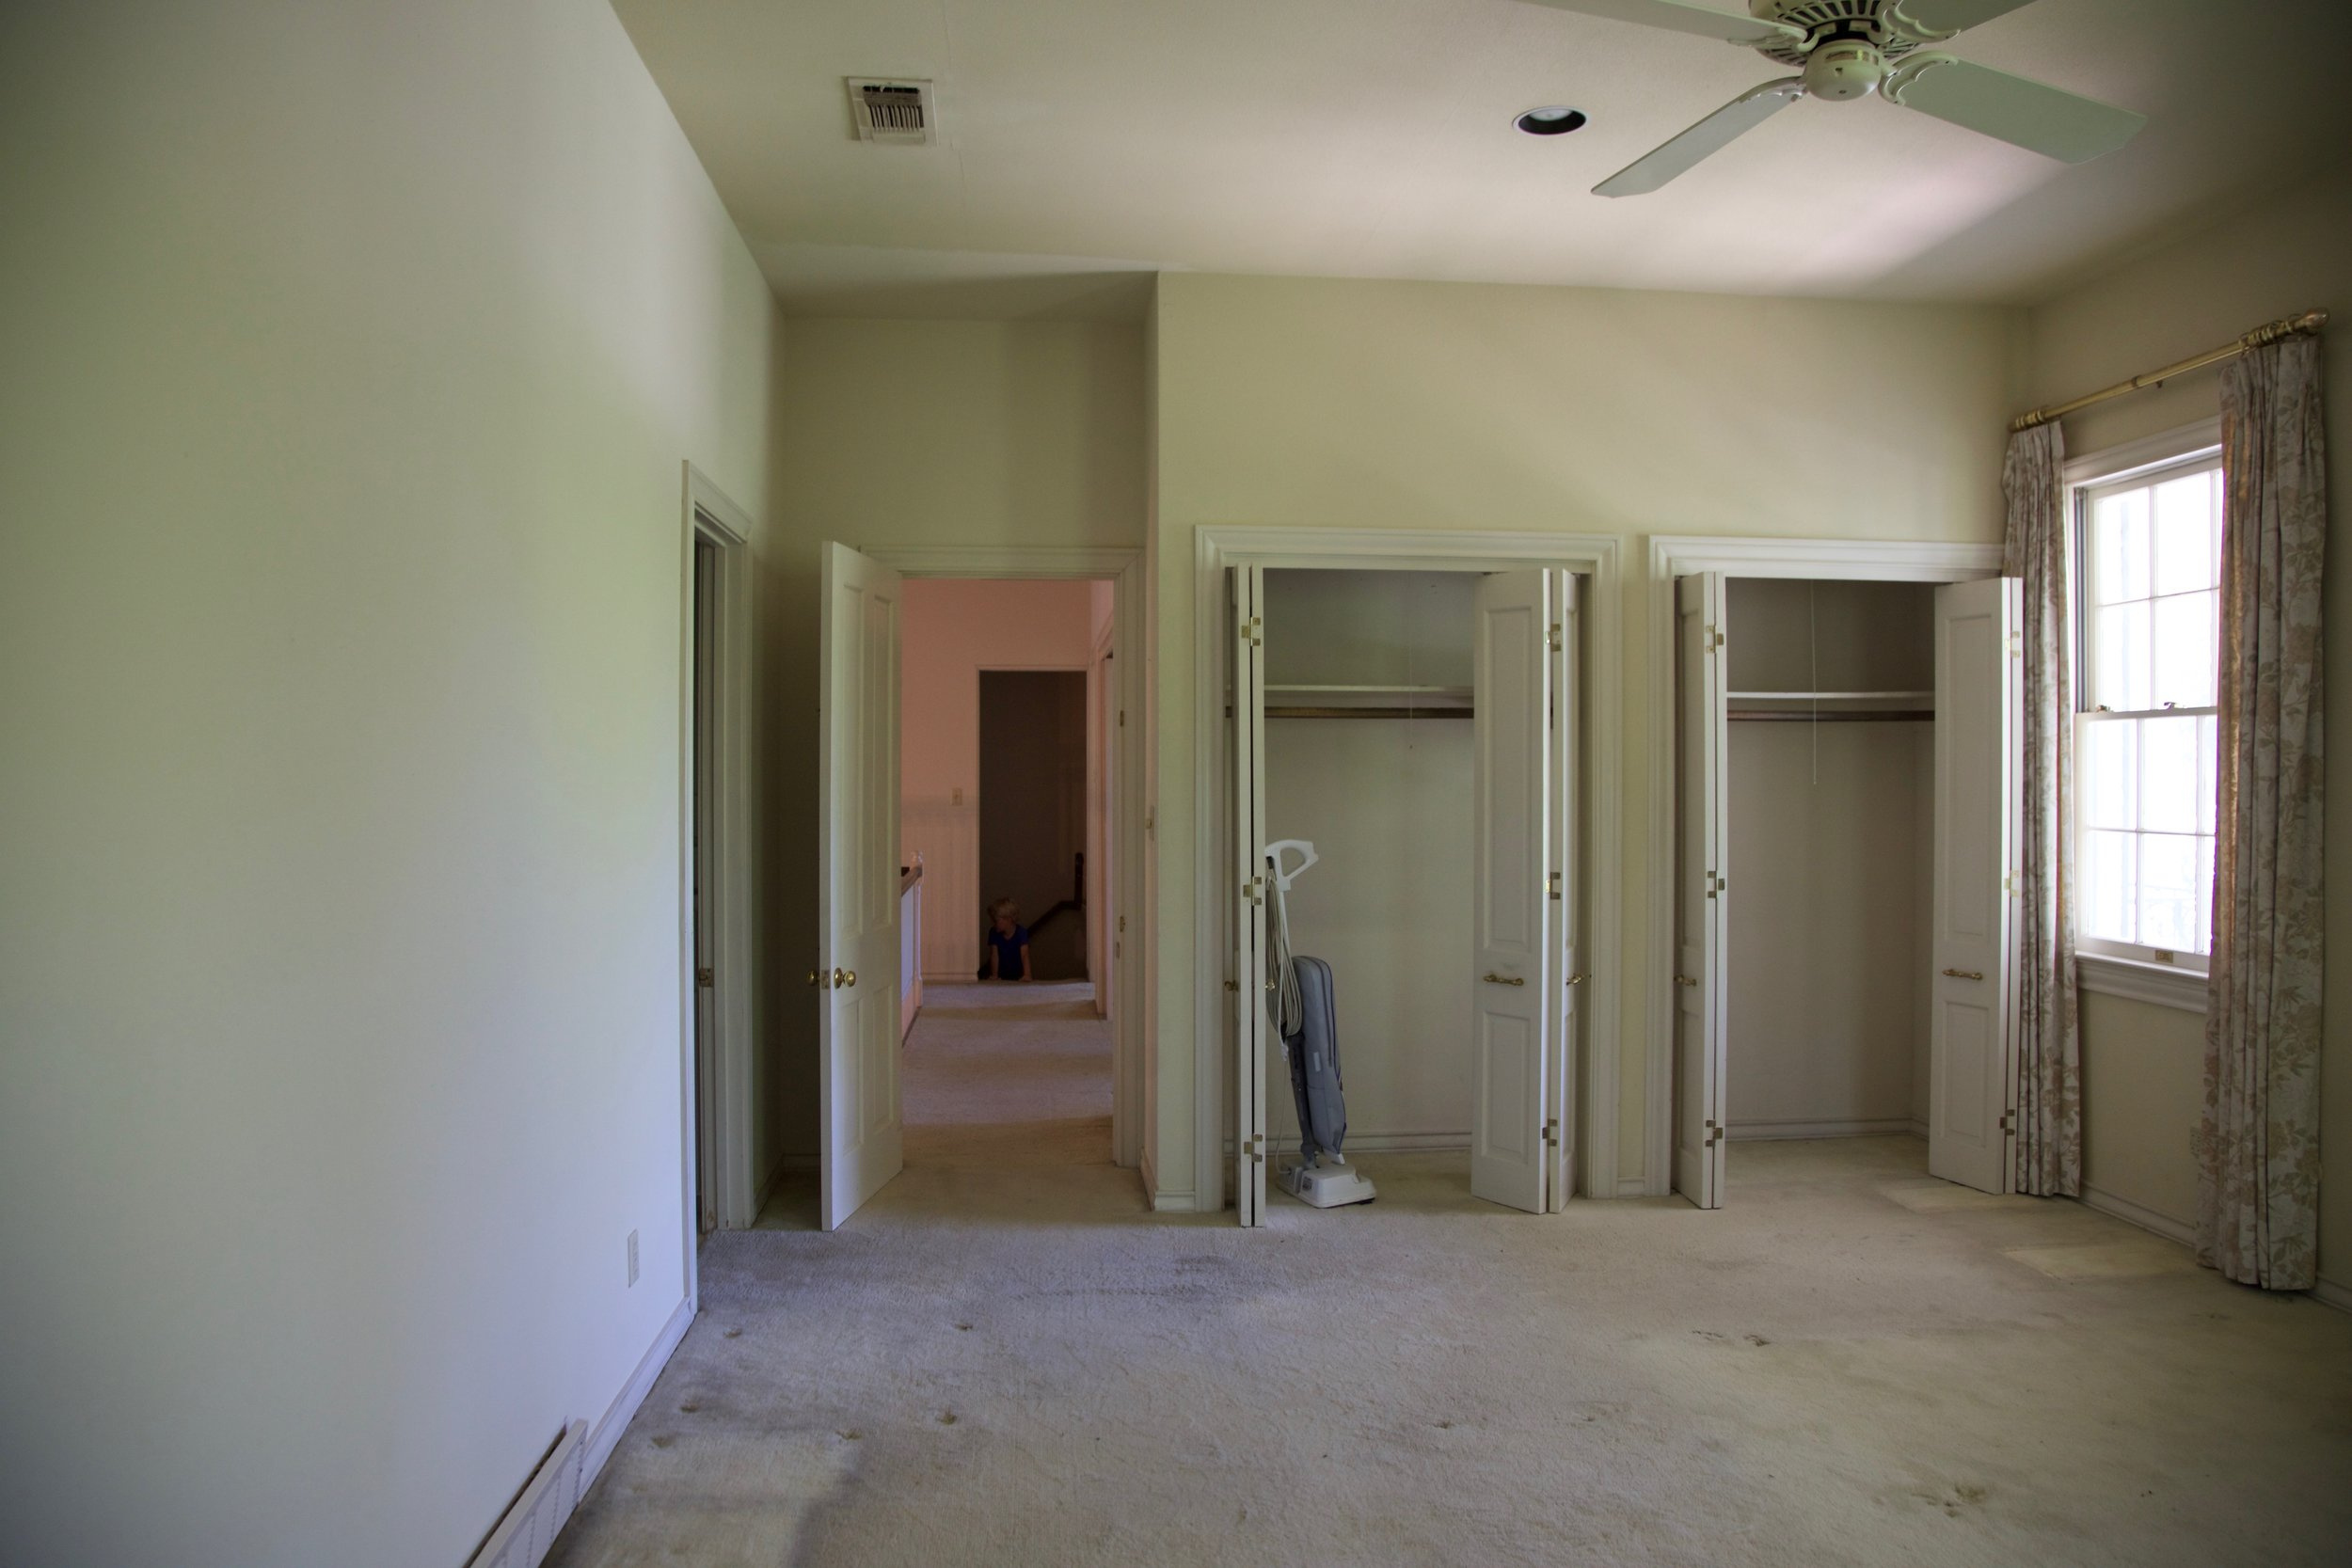 One of the girls' rooms